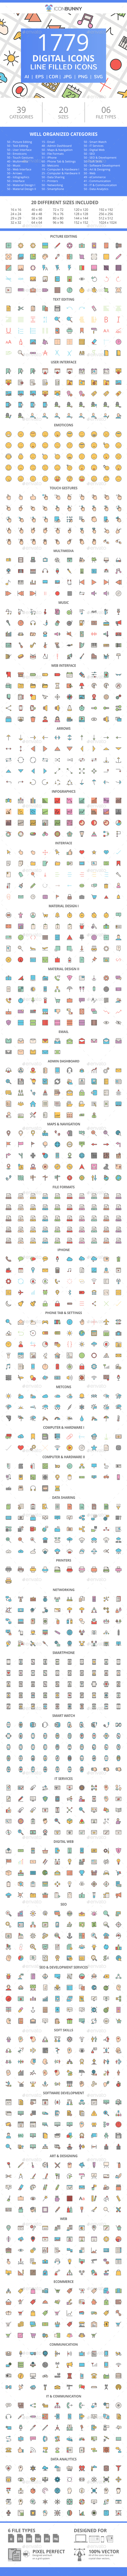 1779 Digital Filled Line Icons - Icons